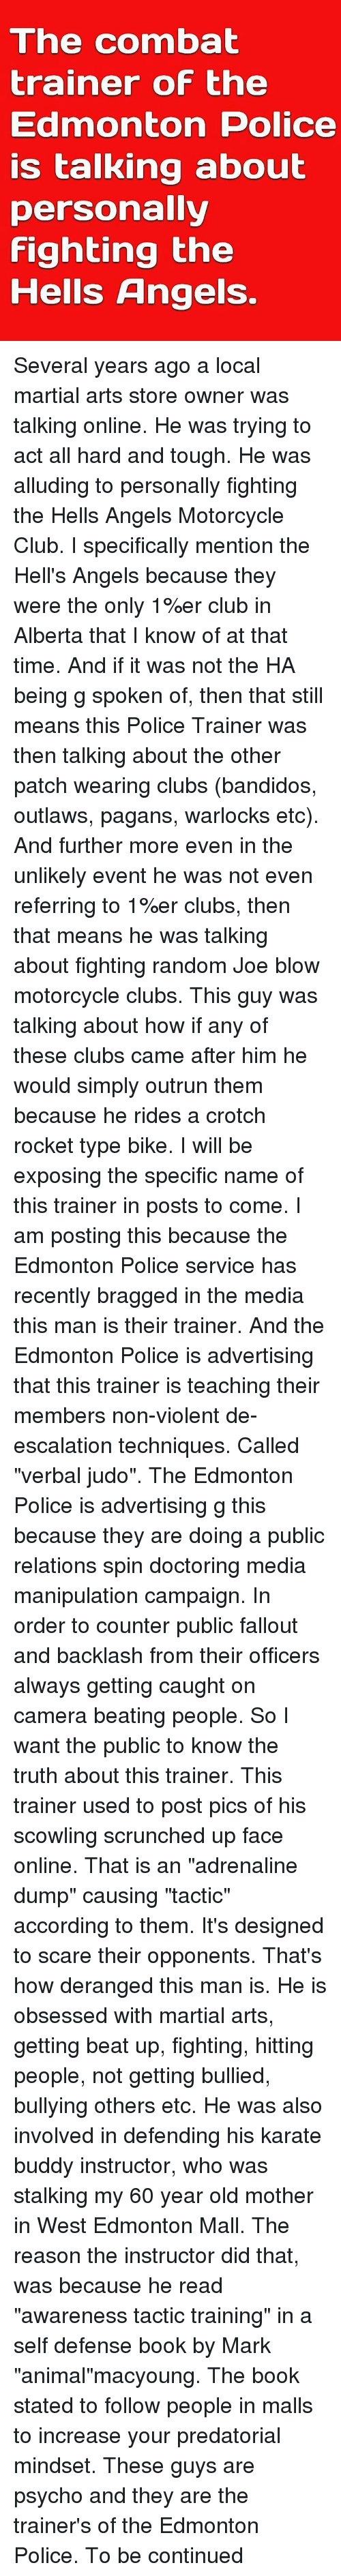 """Crotch Rocket: The combat  trainer of the  Edmonton Police  is talking about  personally  fighting the  Hells Angels. Several years ago a local martial arts store owner was talking online. He was trying to act all hard and tough. He was alluding to personally fighting the Hells Angels Motorcycle Club. I specifically mention the Hell's Angels because they were the only 1%er club in Alberta that I know of at that time. And if it was not the HA being g spoken of, then that still means this Police Trainer was then talking about the other patch wearing clubs (bandidos, outlaws, pagans, warlocks etc). And further more even in the unlikely event he was not even referring to 1%er clubs, then that means he was talking about fighting random Joe blow motorcycle clubs. This guy was talking about how if any of these clubs came after him he would simply outrun them because he rides a crotch rocket type bike. I will be exposing the specific name of this trainer in posts to come. I am posting this because the Edmonton Police service has recently bragged in the media this man is their trainer. And the Edmonton Police is advertising that this trainer is teaching their members non-violent de-escalation techniques. Called """"verbal judo"""". The Edmonton Police is advertising g this because they are doing a public relations spin doctoring media manipulation campaign. In order to counter public fallout and backlash from their officers always getting caught on camera beating people. So I want the public to know the truth about this trainer. This trainer used to post pics of his scowling scrunched up face online. That is an """"adrenaline dump"""" causing """"tactic"""" according to them. It's designed to scare their opponents. That's how deranged this man is. He is obsessed with martial arts, getting beat up, fighting, hitting people, not getting bullied, bullying others etc. He was also involved in defending his karate buddy instructor, who was stalking my 60 year old mother in West Edmonton Mall. The r"""